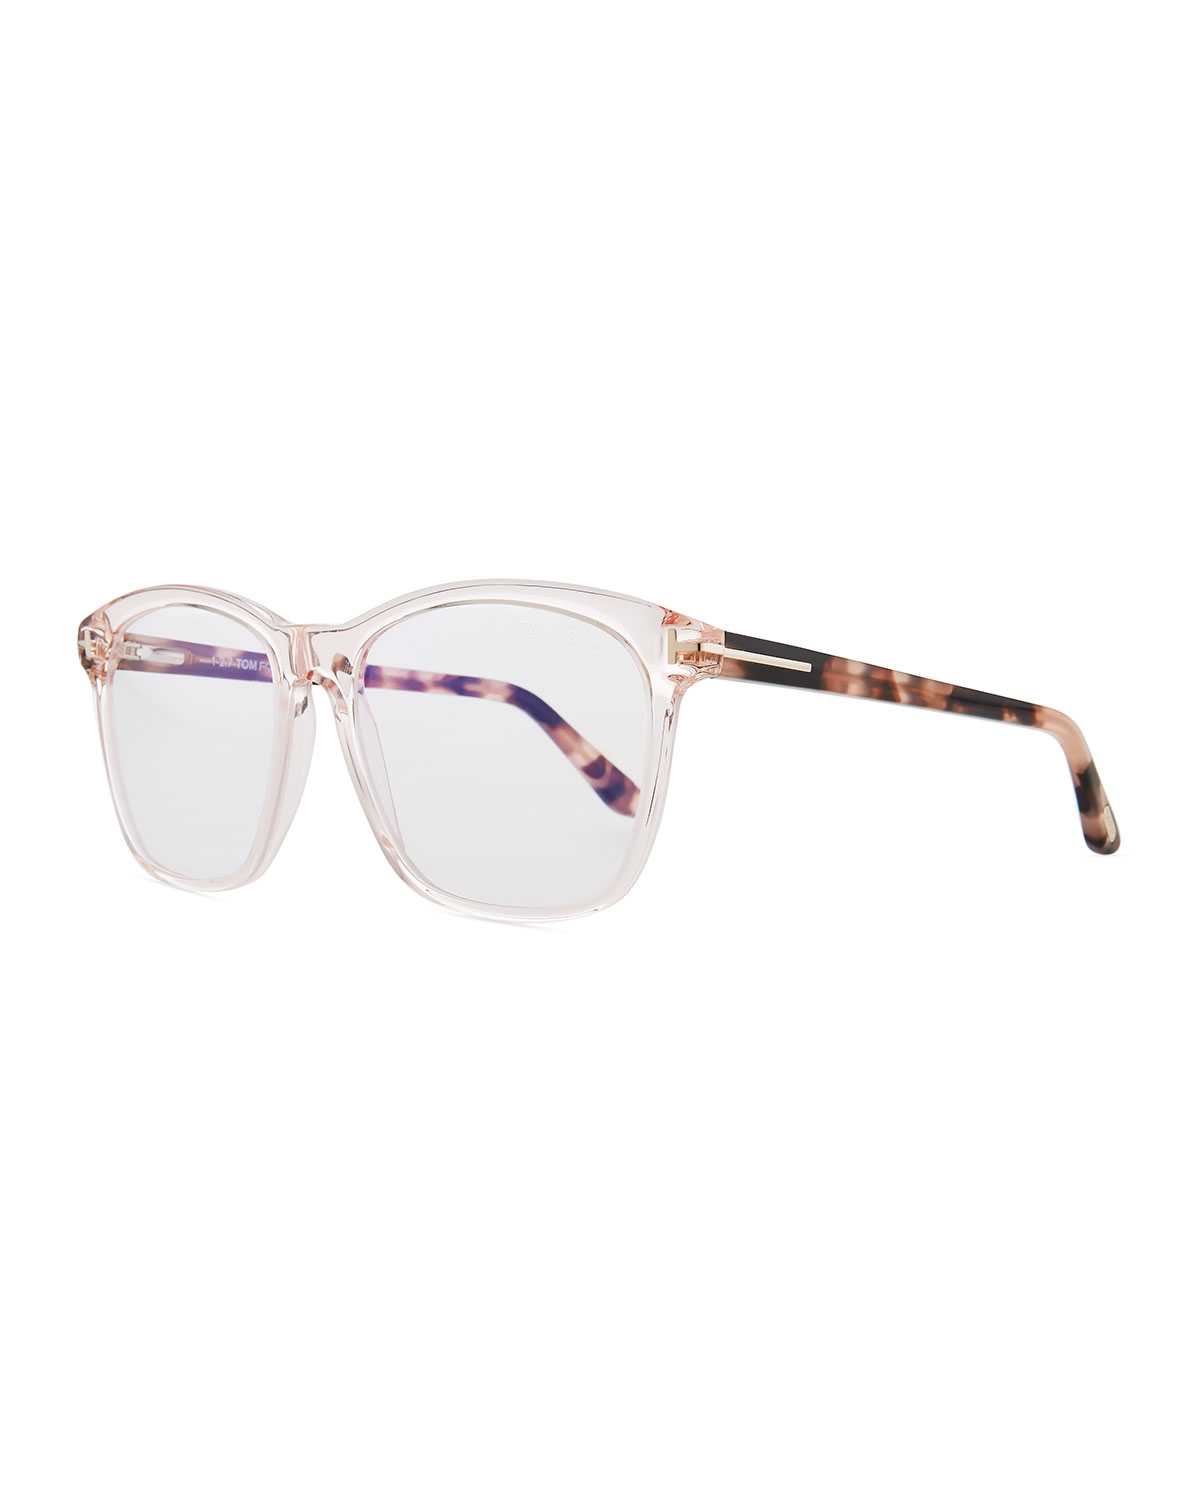 8950afb03ca Tom Ford Clear Frames